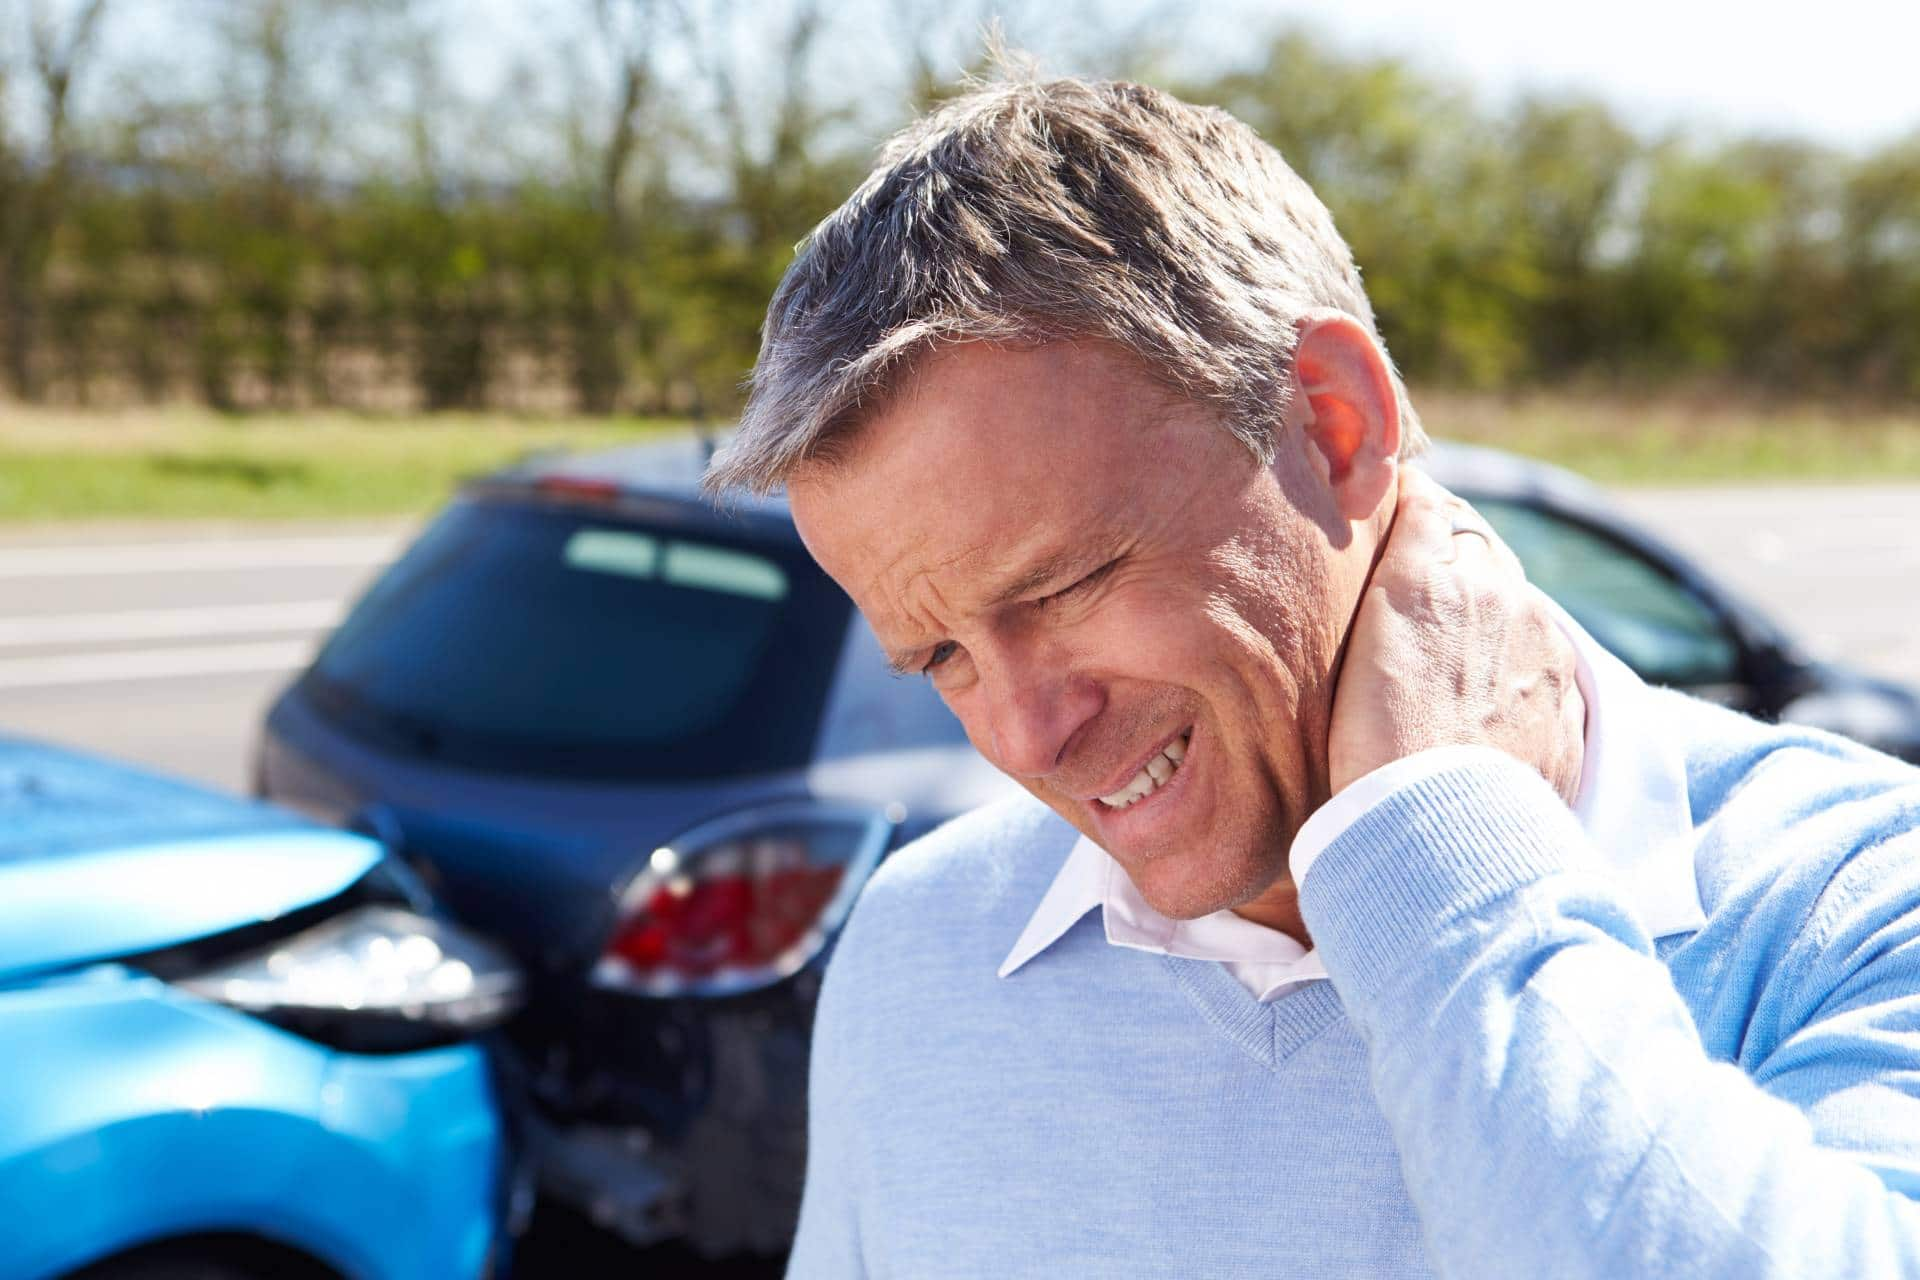 Hurt in a car accident? Schedule a free consultation with our personal injury lawyers at the Angell Law Firm in Little Five Points, Ga.